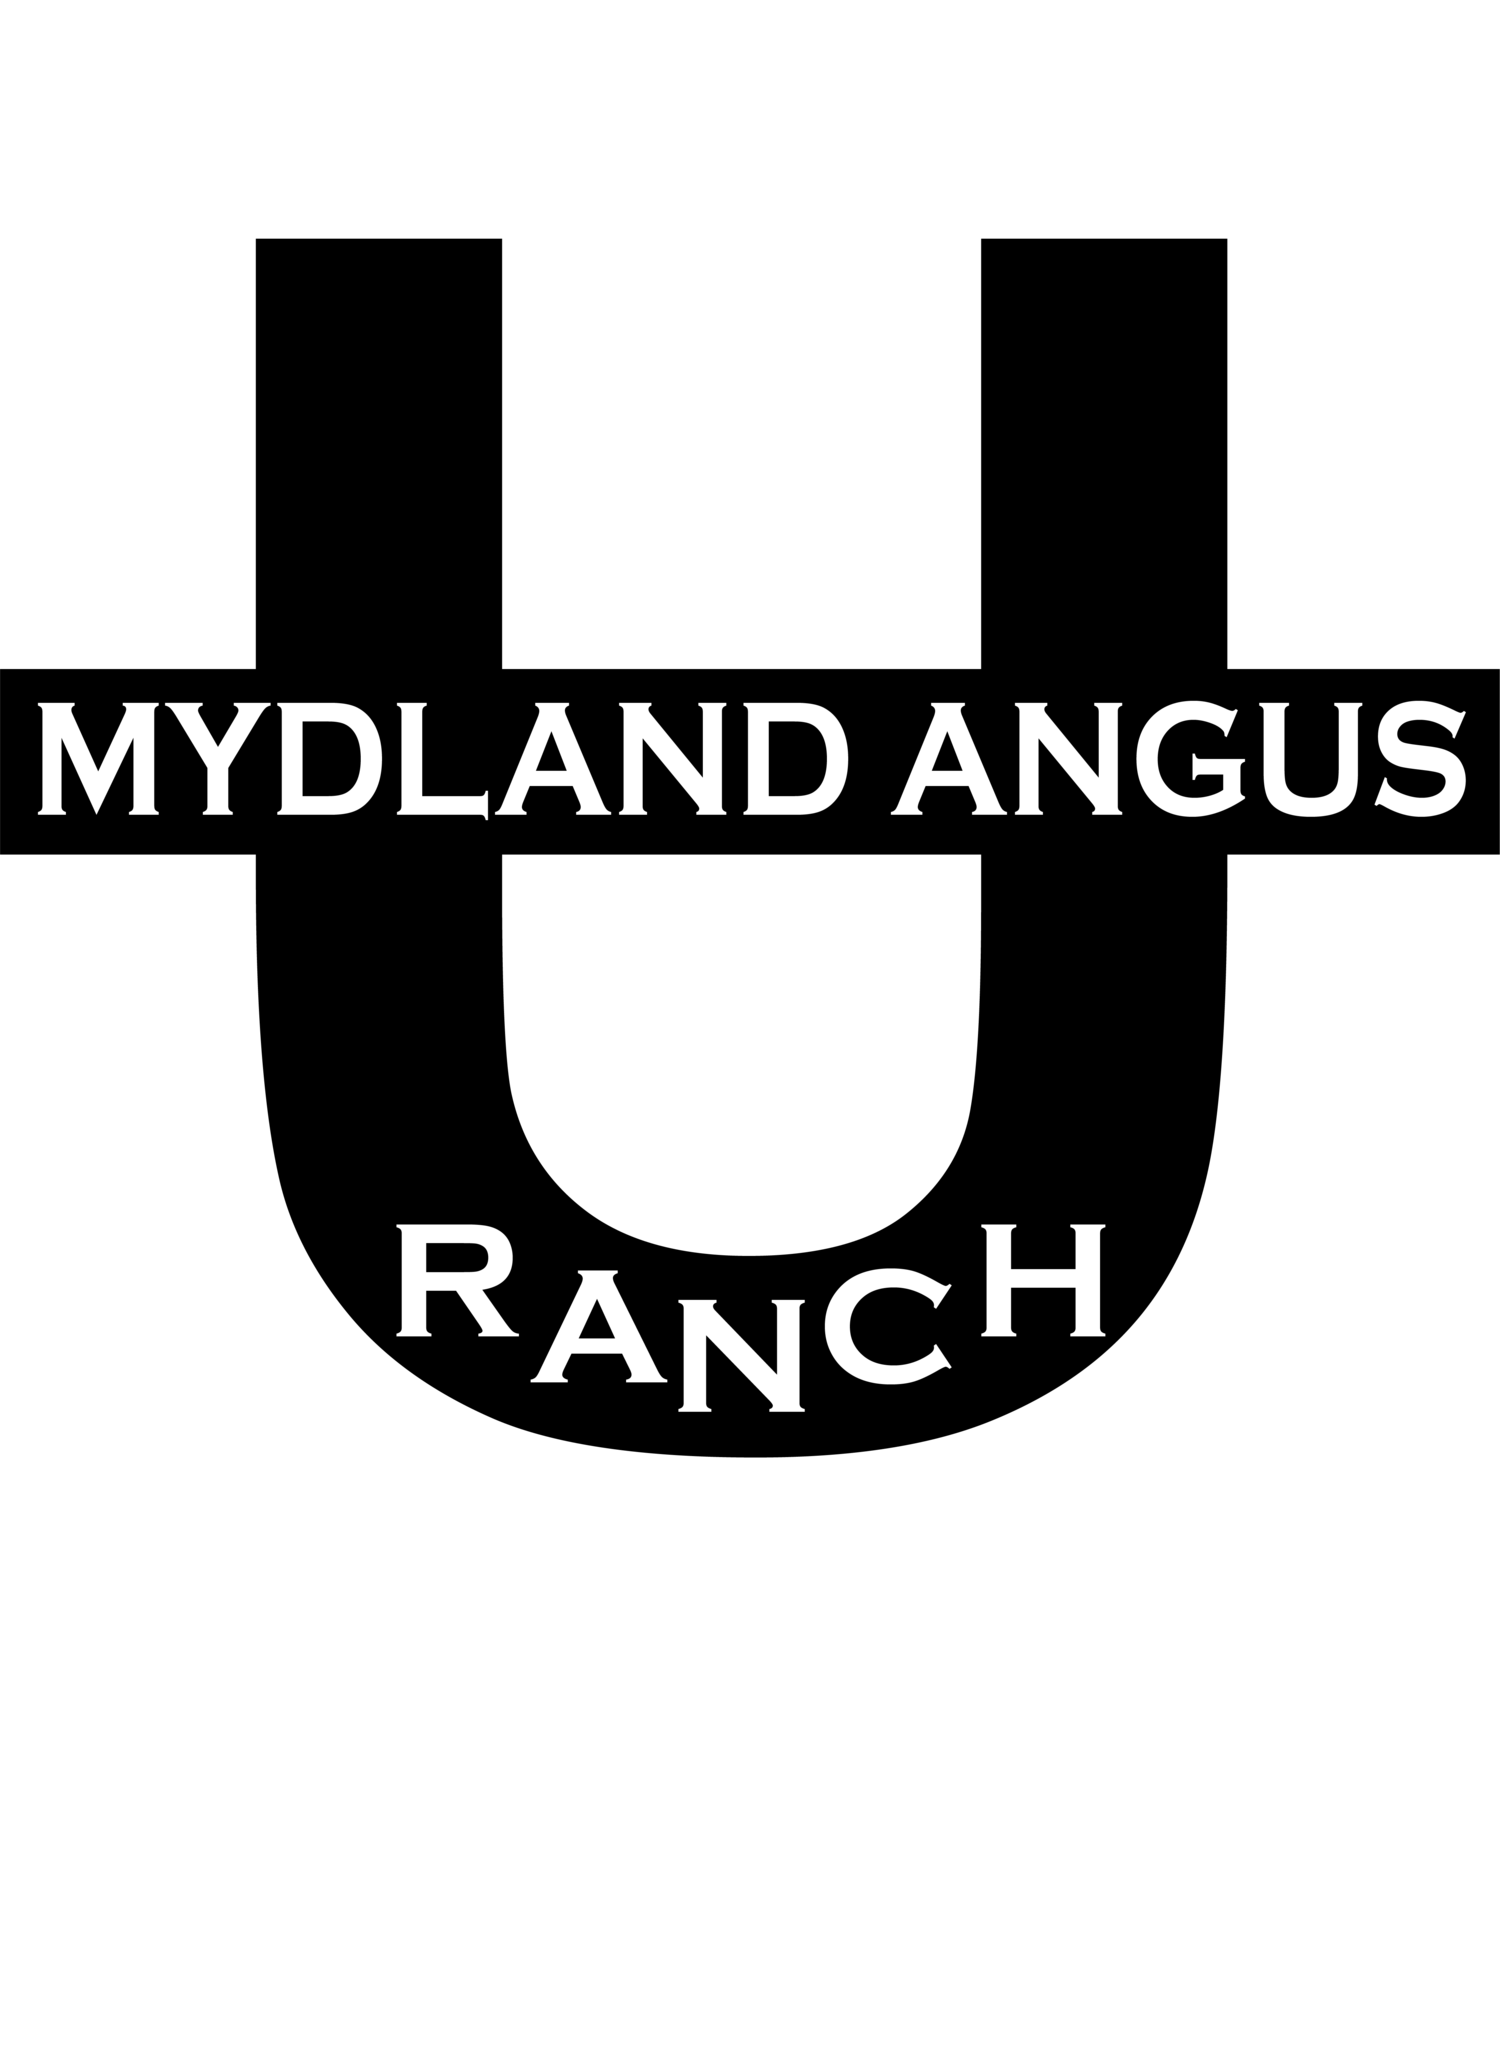 Mydland Angus Ranch